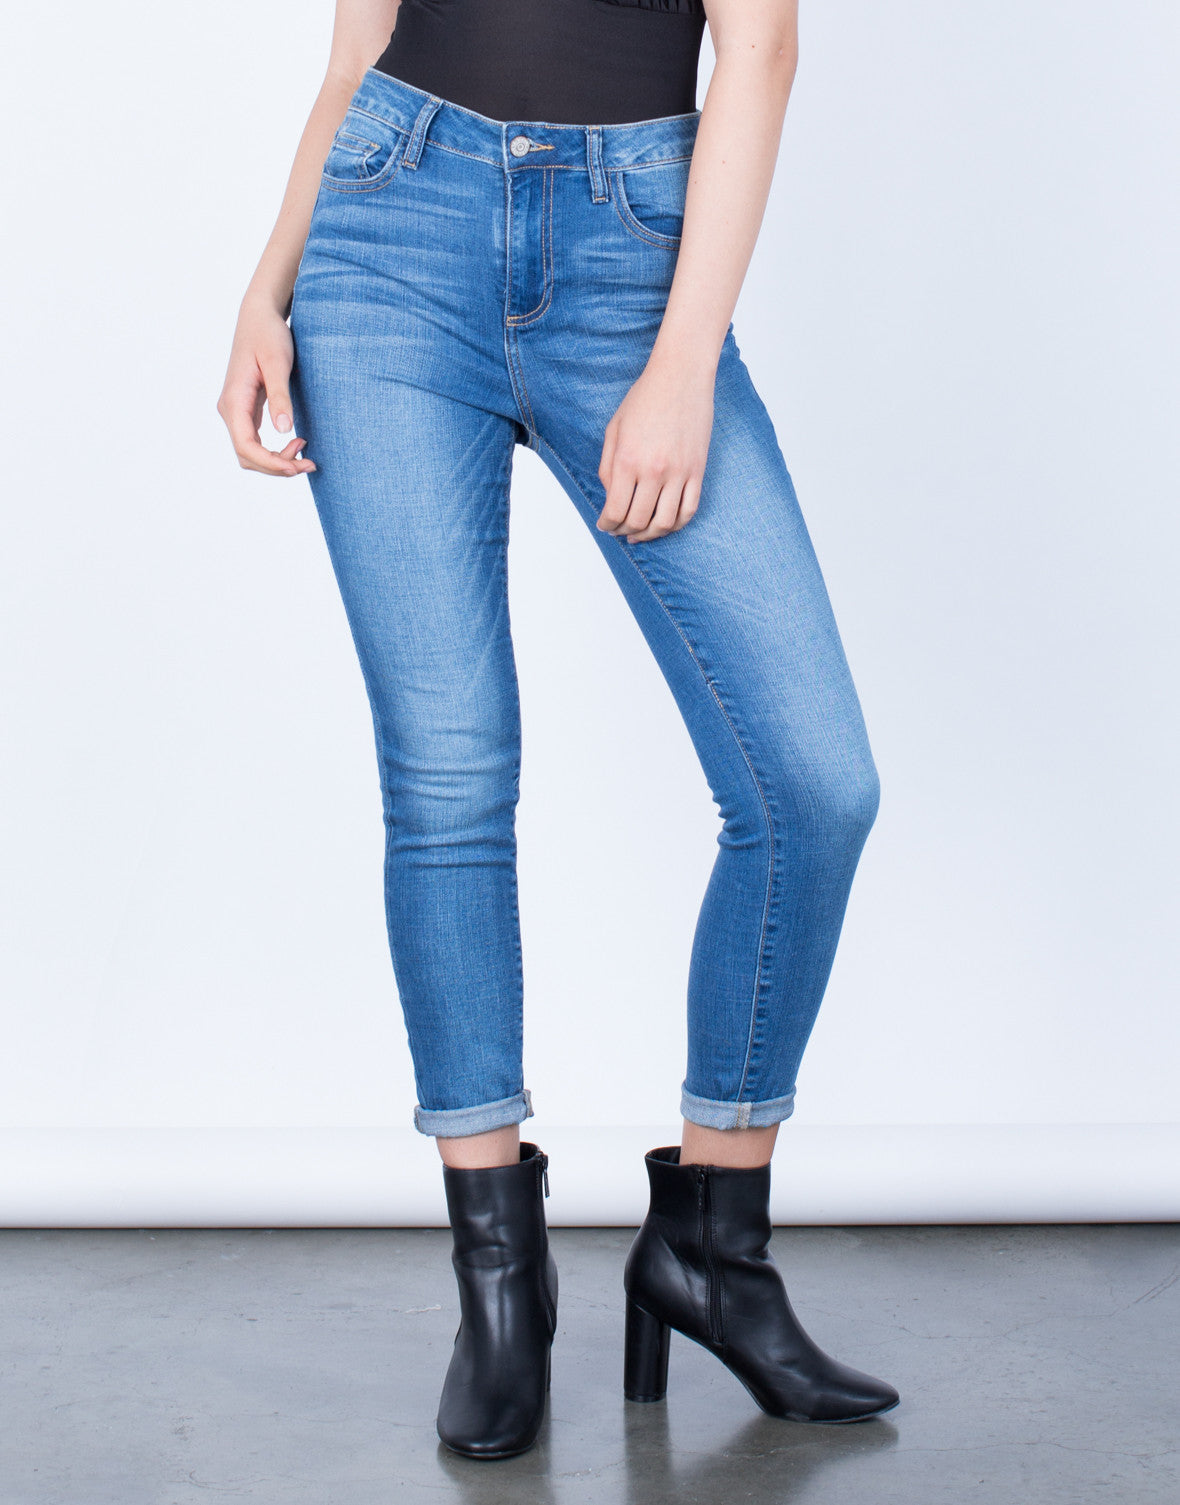 Front View of Classic Blue Jeans